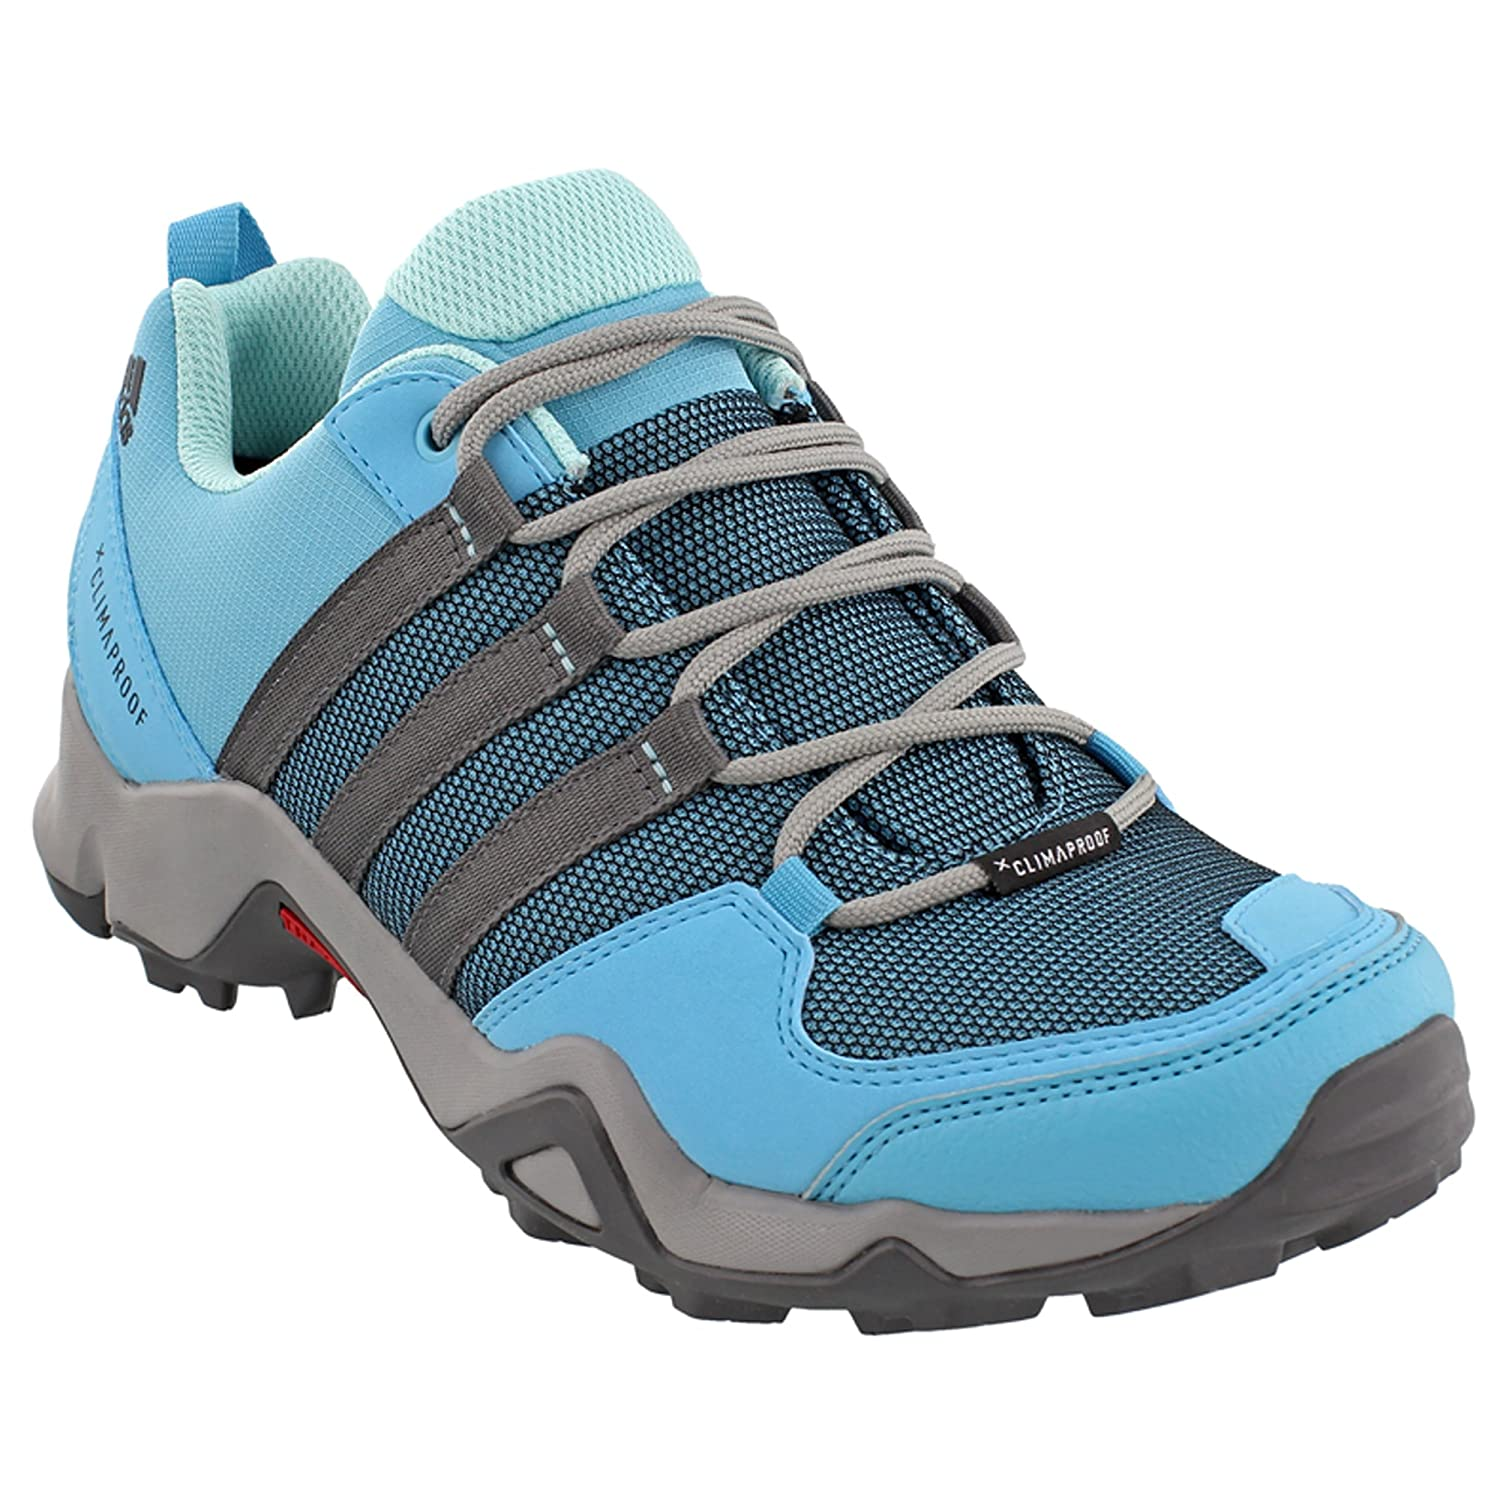 adidas AX2 CP Hiking Shoes Womens B01MS2LO86 8 B(M) US|Ch Solid Grey/Vapour Blue/Grey Five